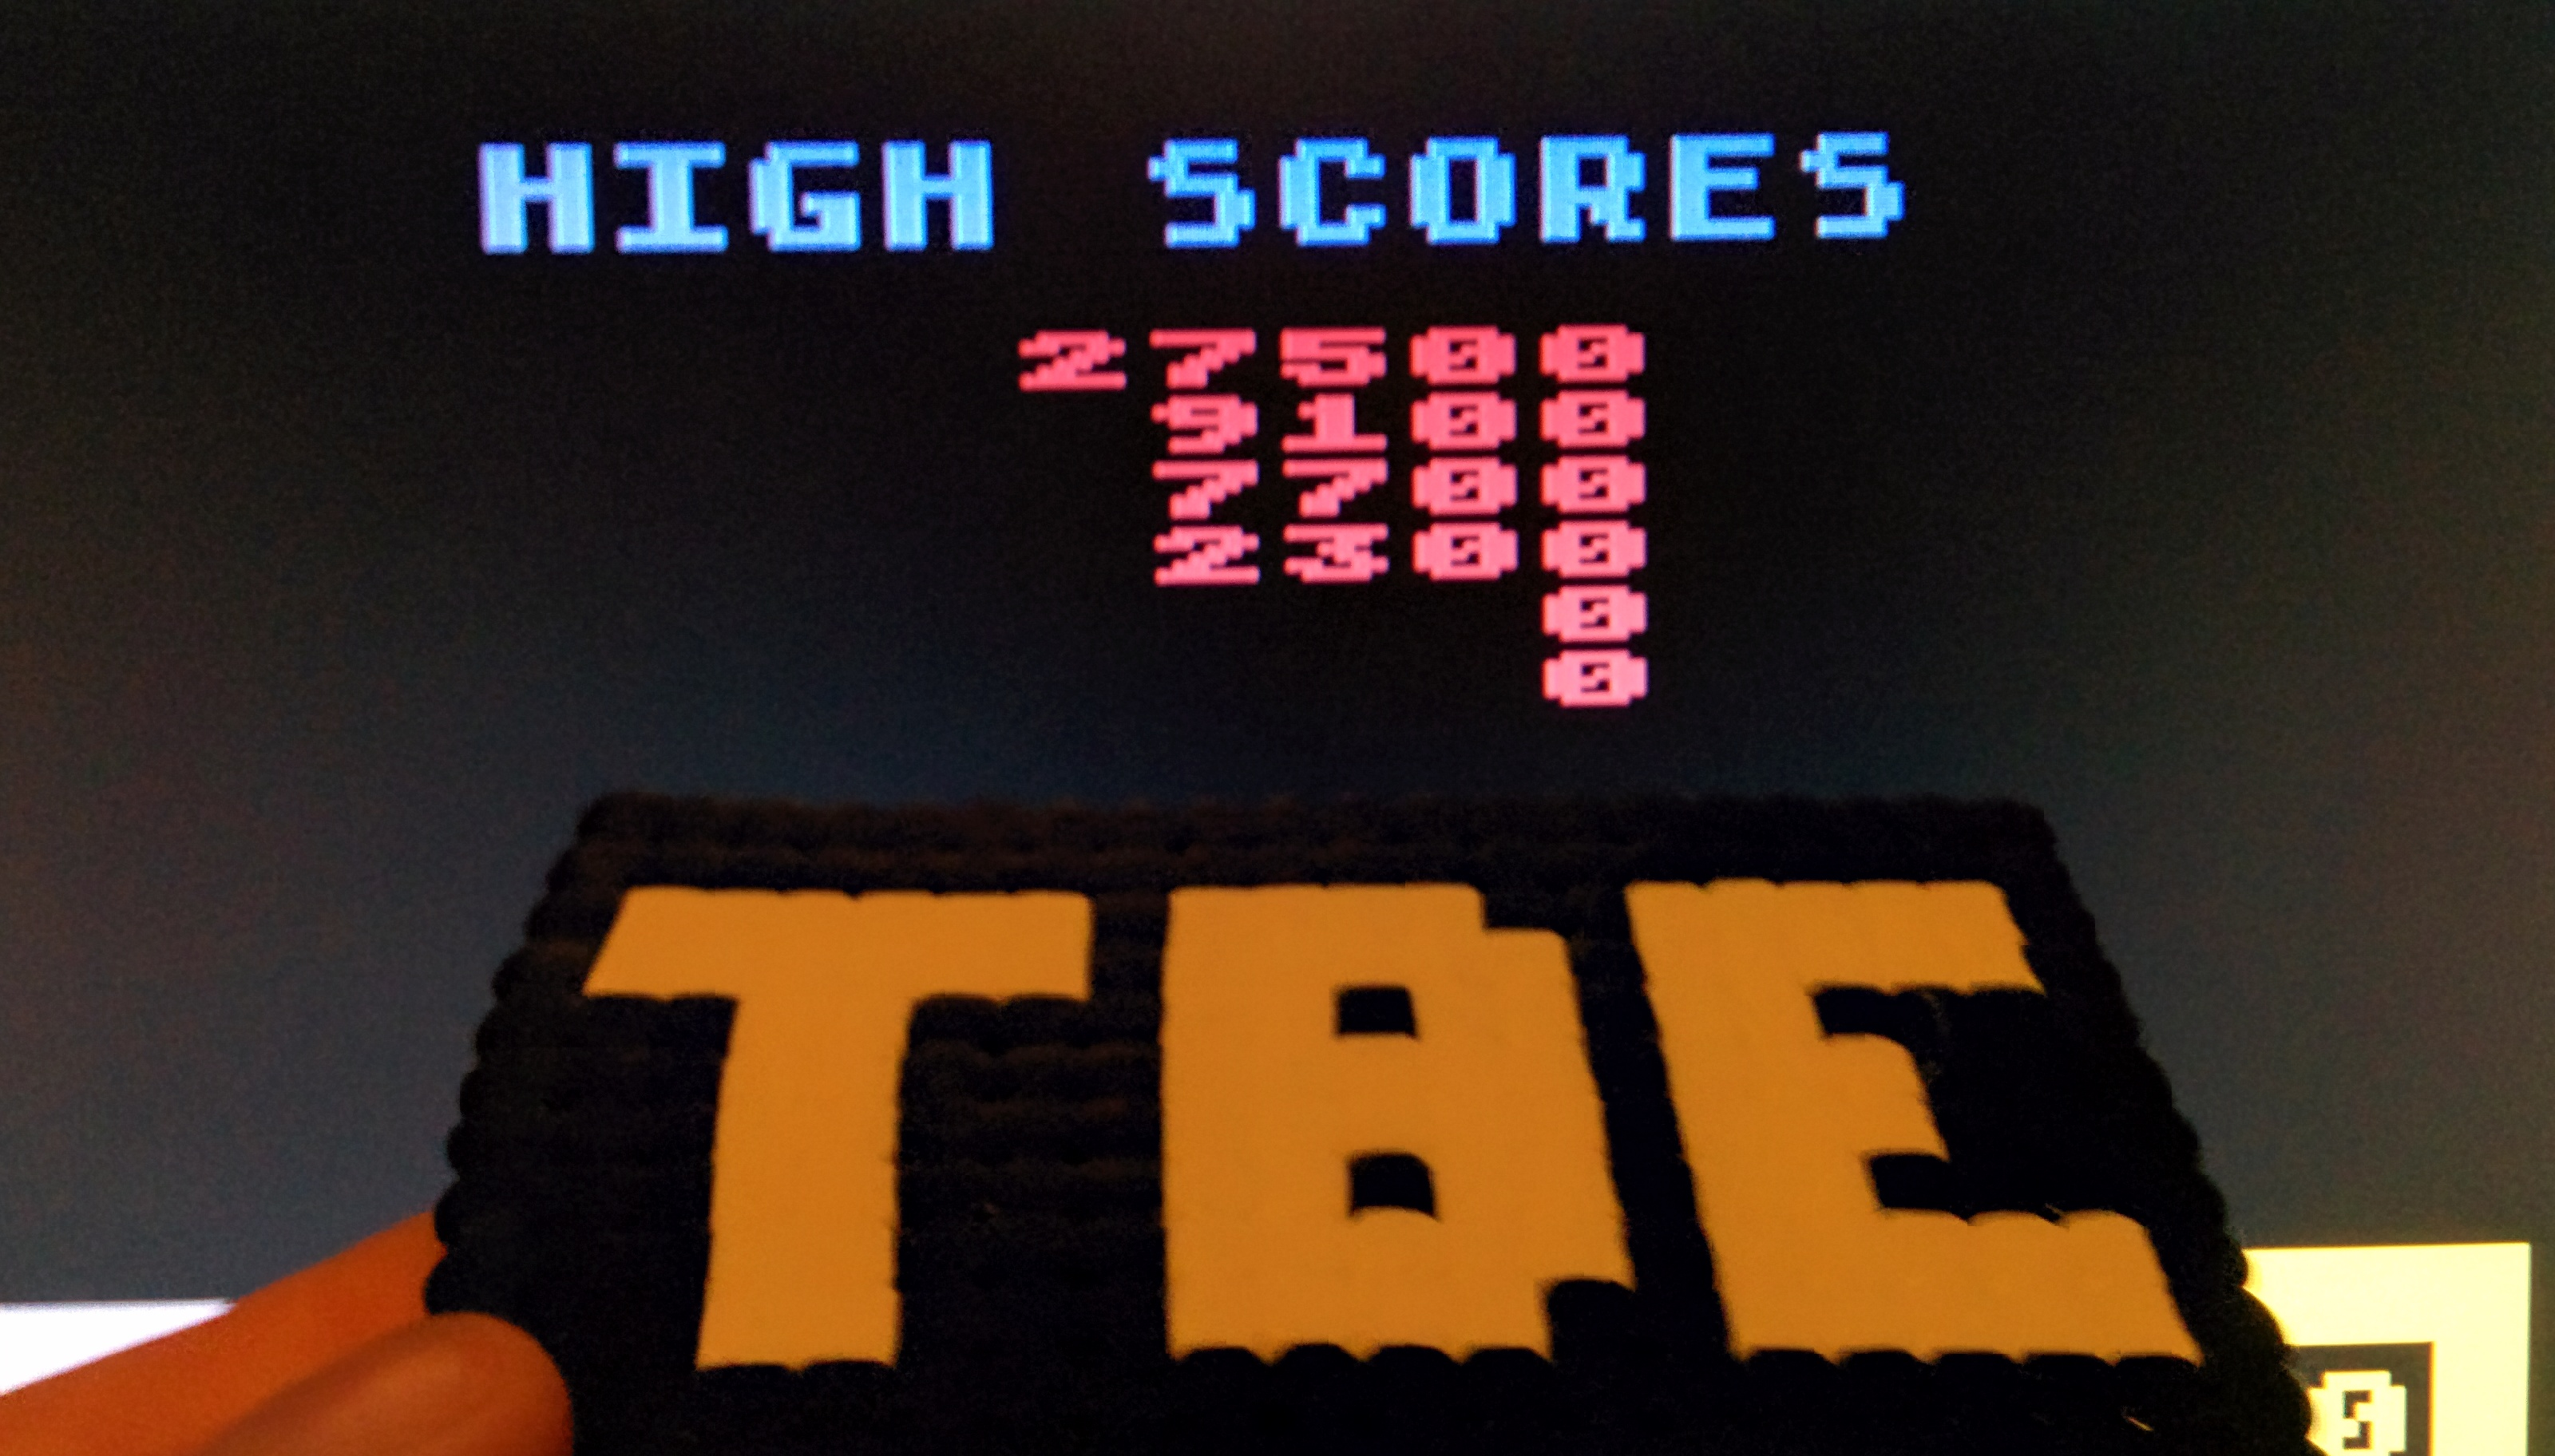 Sixx: Wizard of Wor (Atari 400/800/XL/XE Emulated) 27,500 points on 2014-10-24 16:21:14